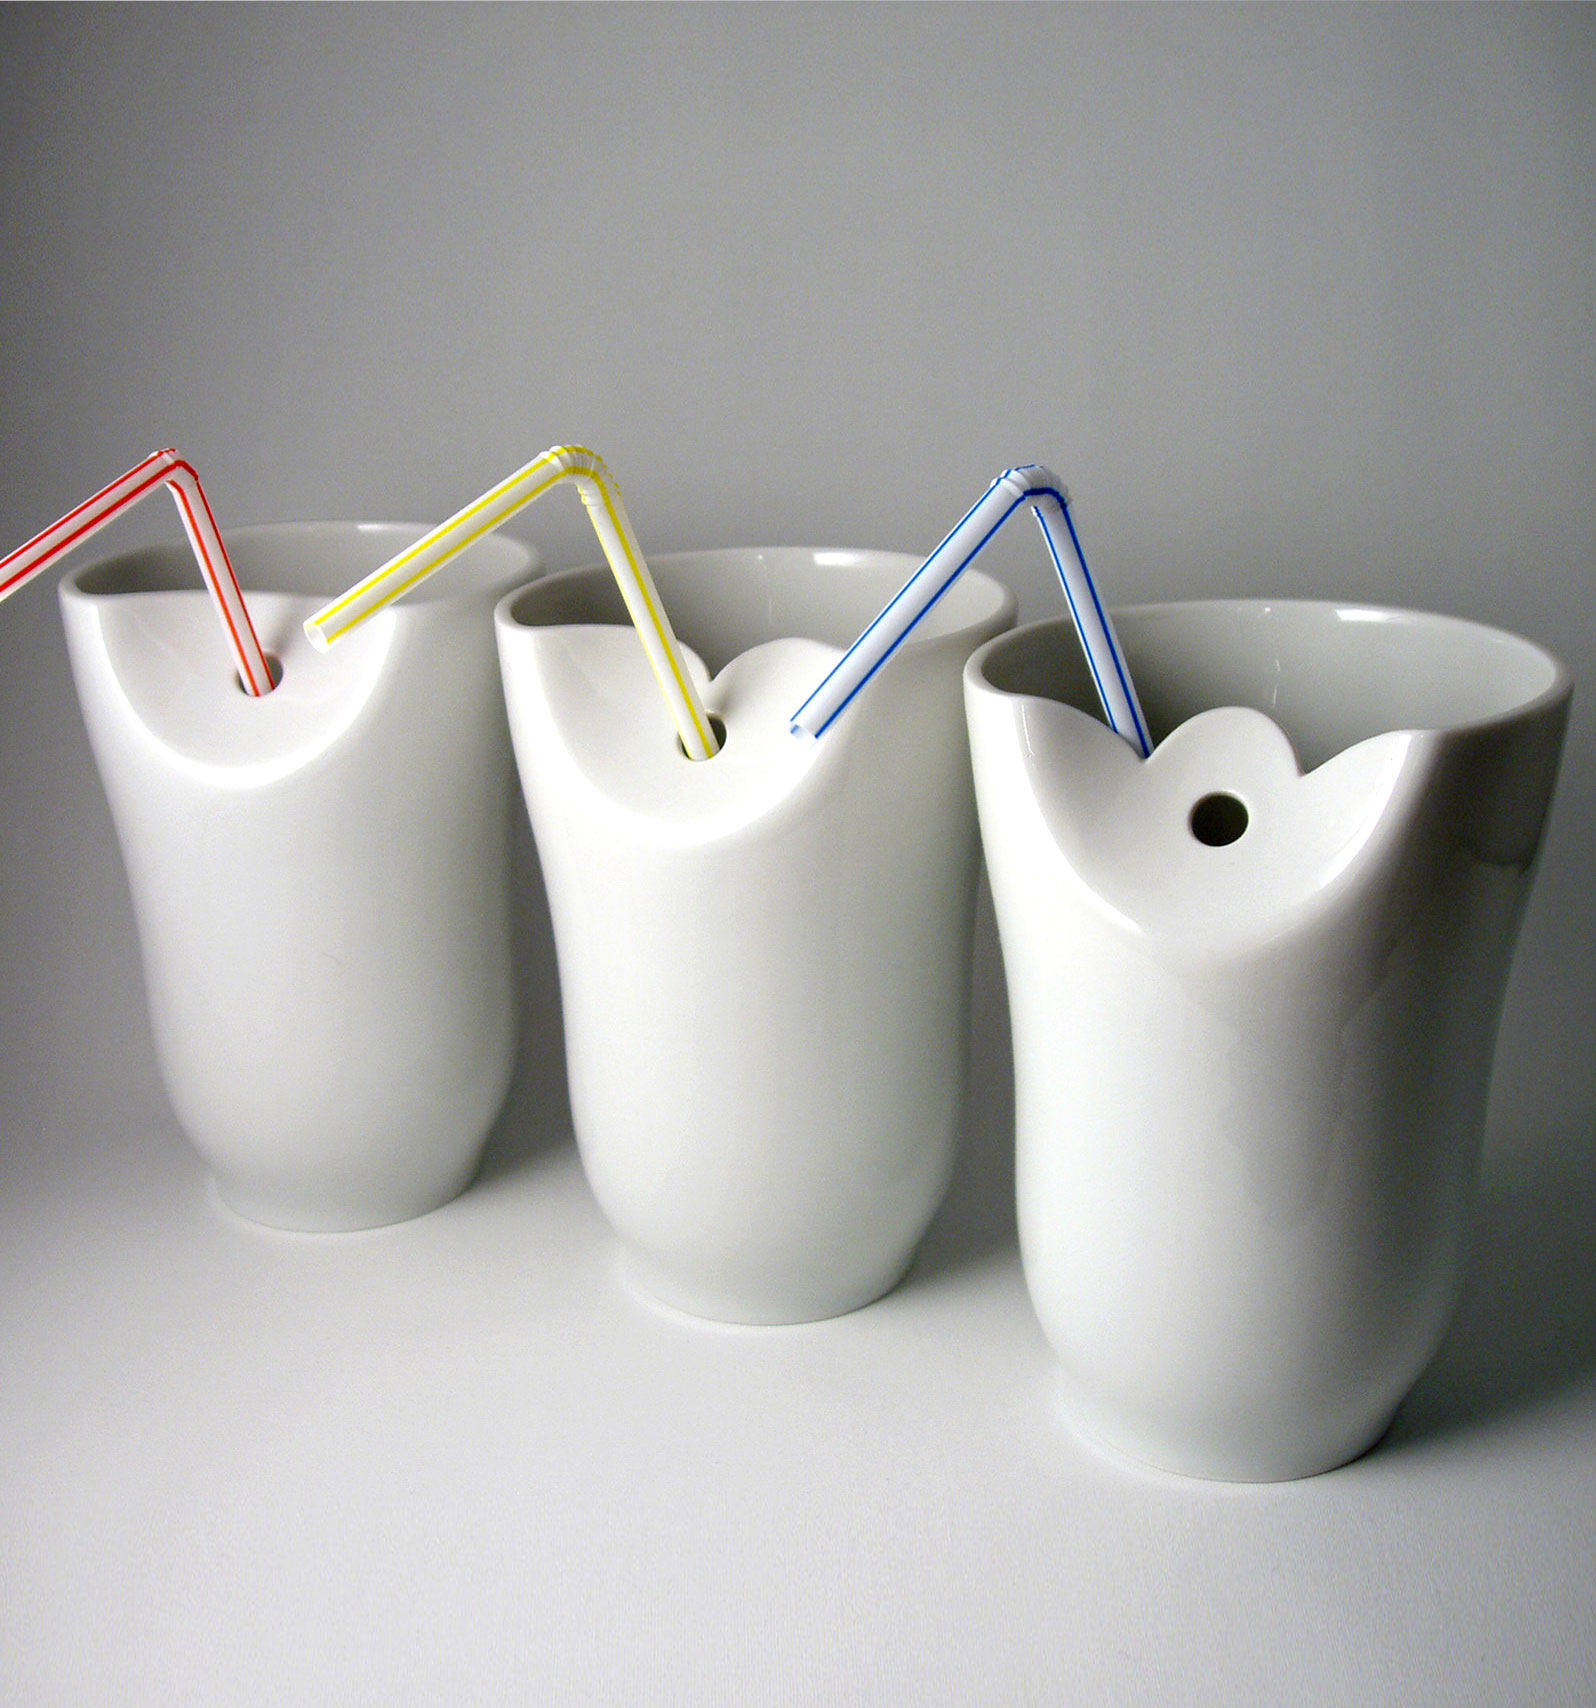 awesome-design-ideas-Handmade-Porcelain-Cups-Sarka-Schmelzerova-2